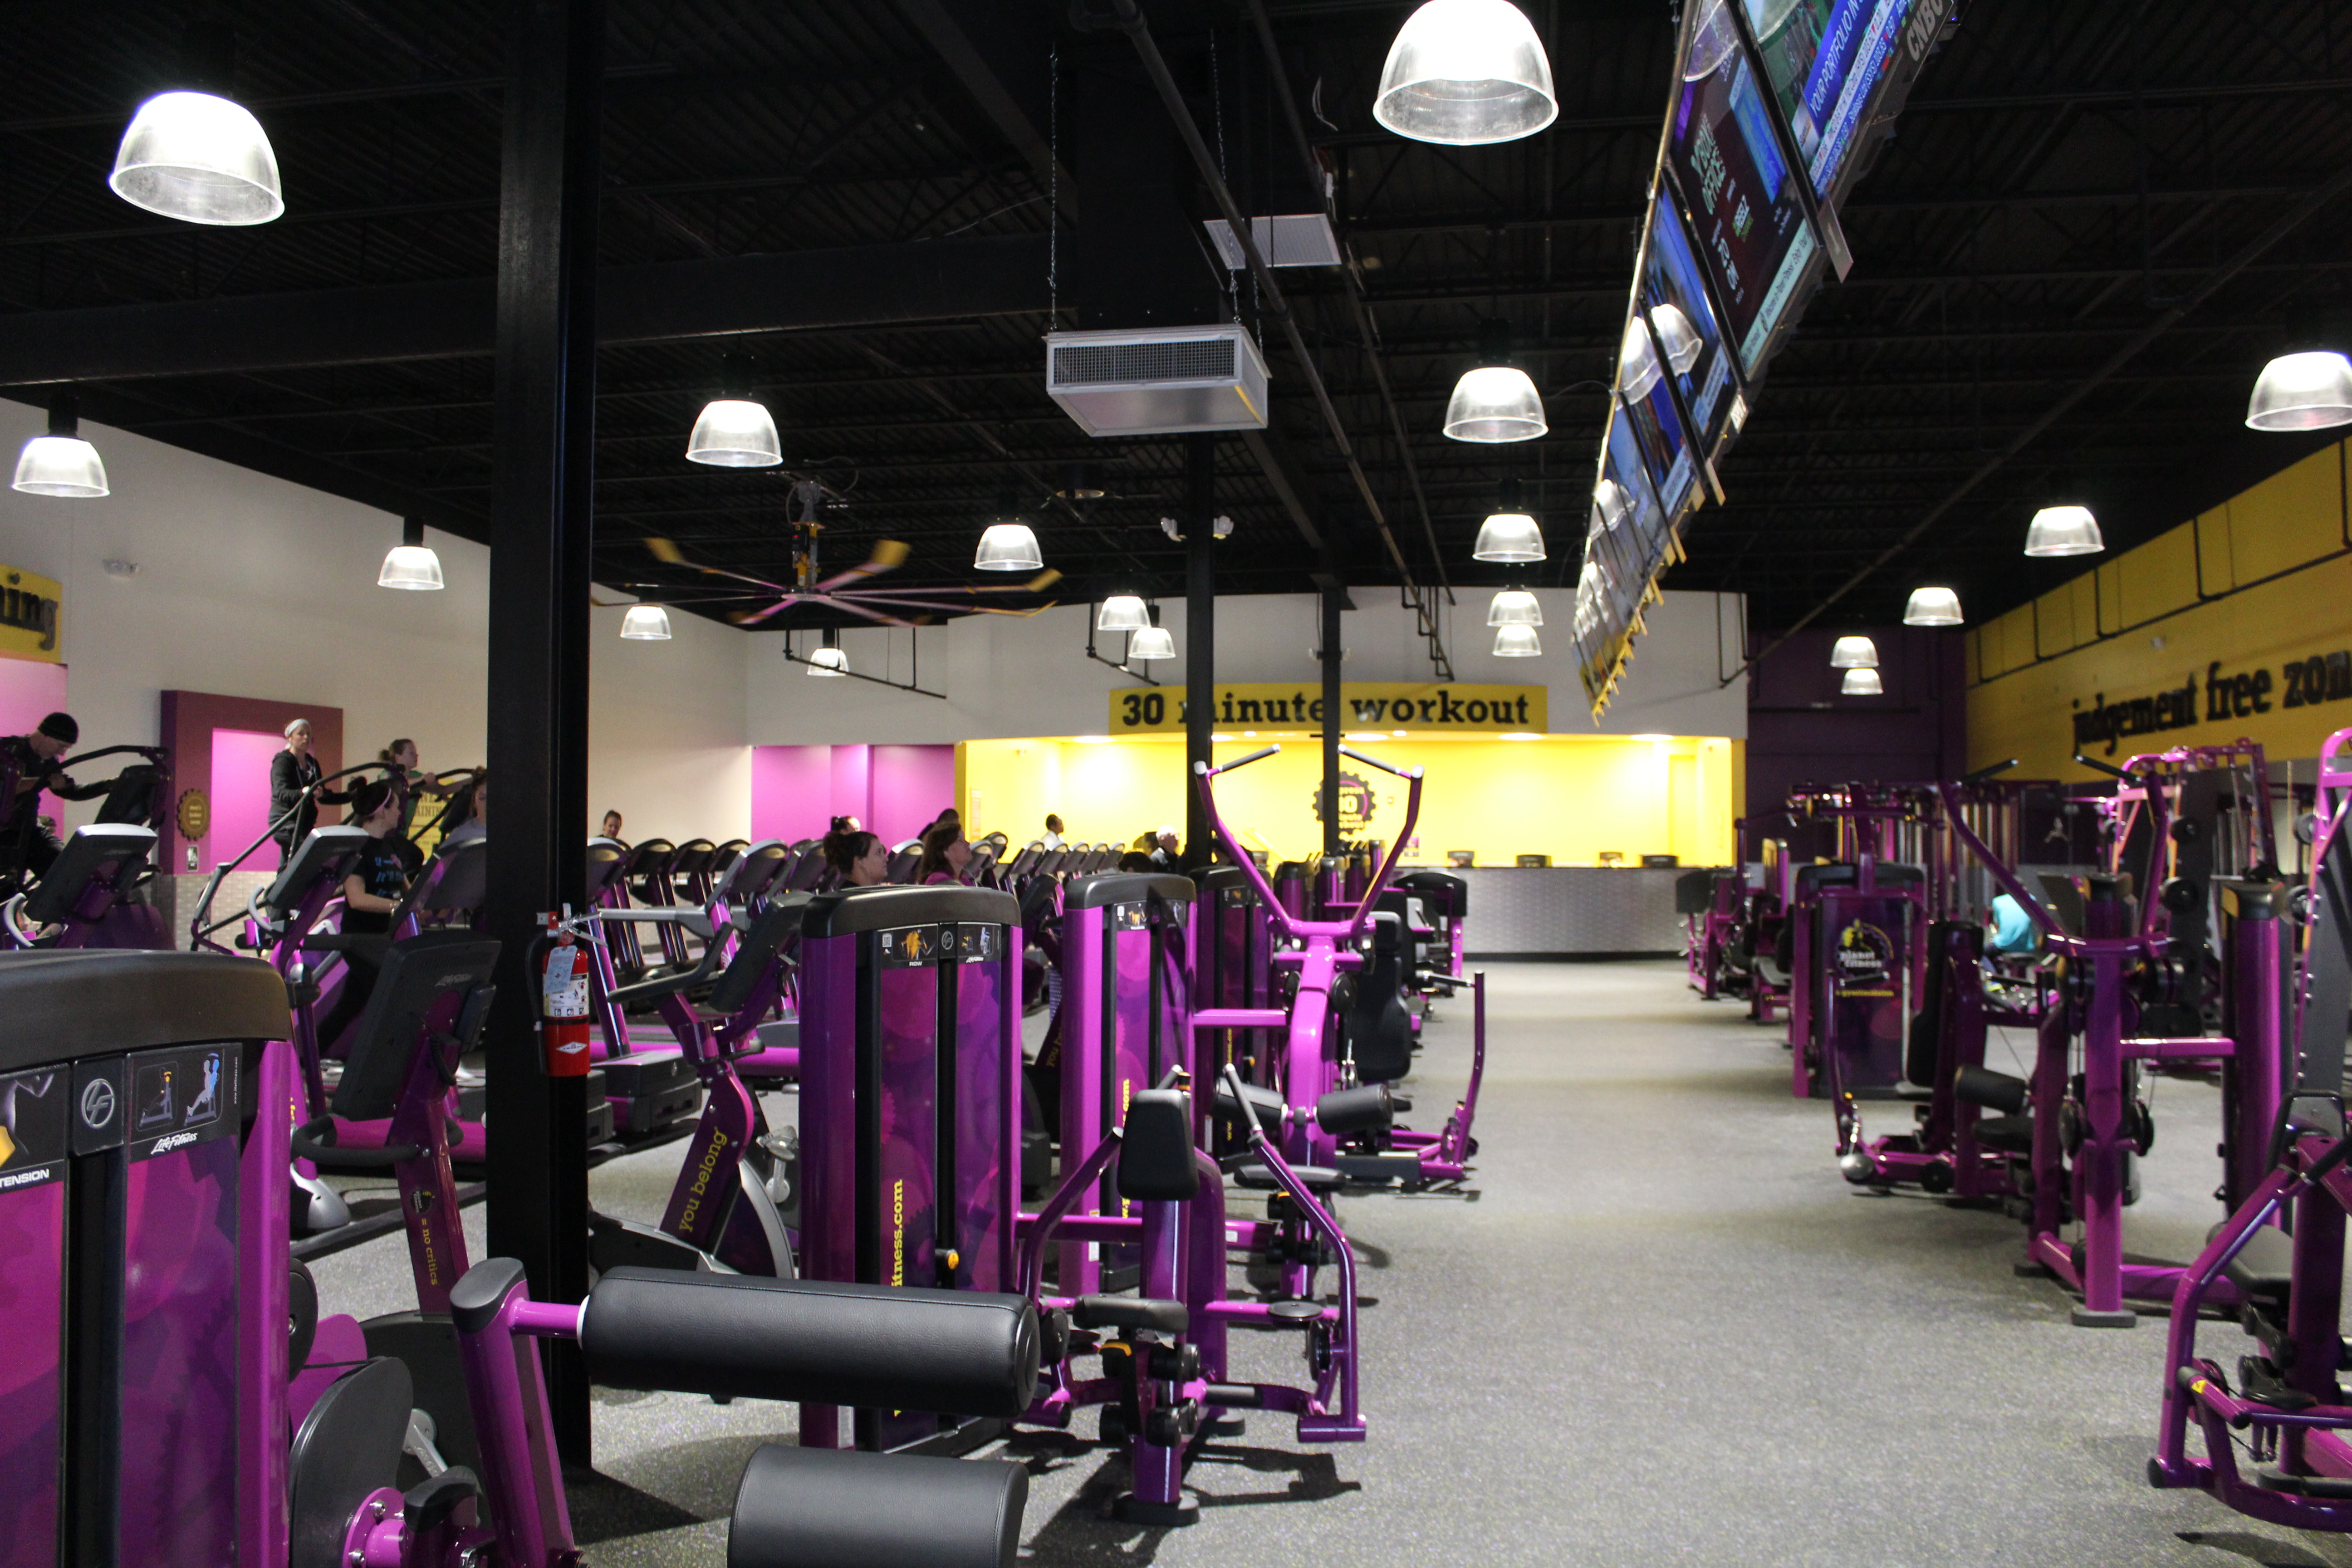 Planet Fitness Travel Guidebook Must Visit Attractions In Dallas Planet Fitness Nearby Recommendation Trip Com